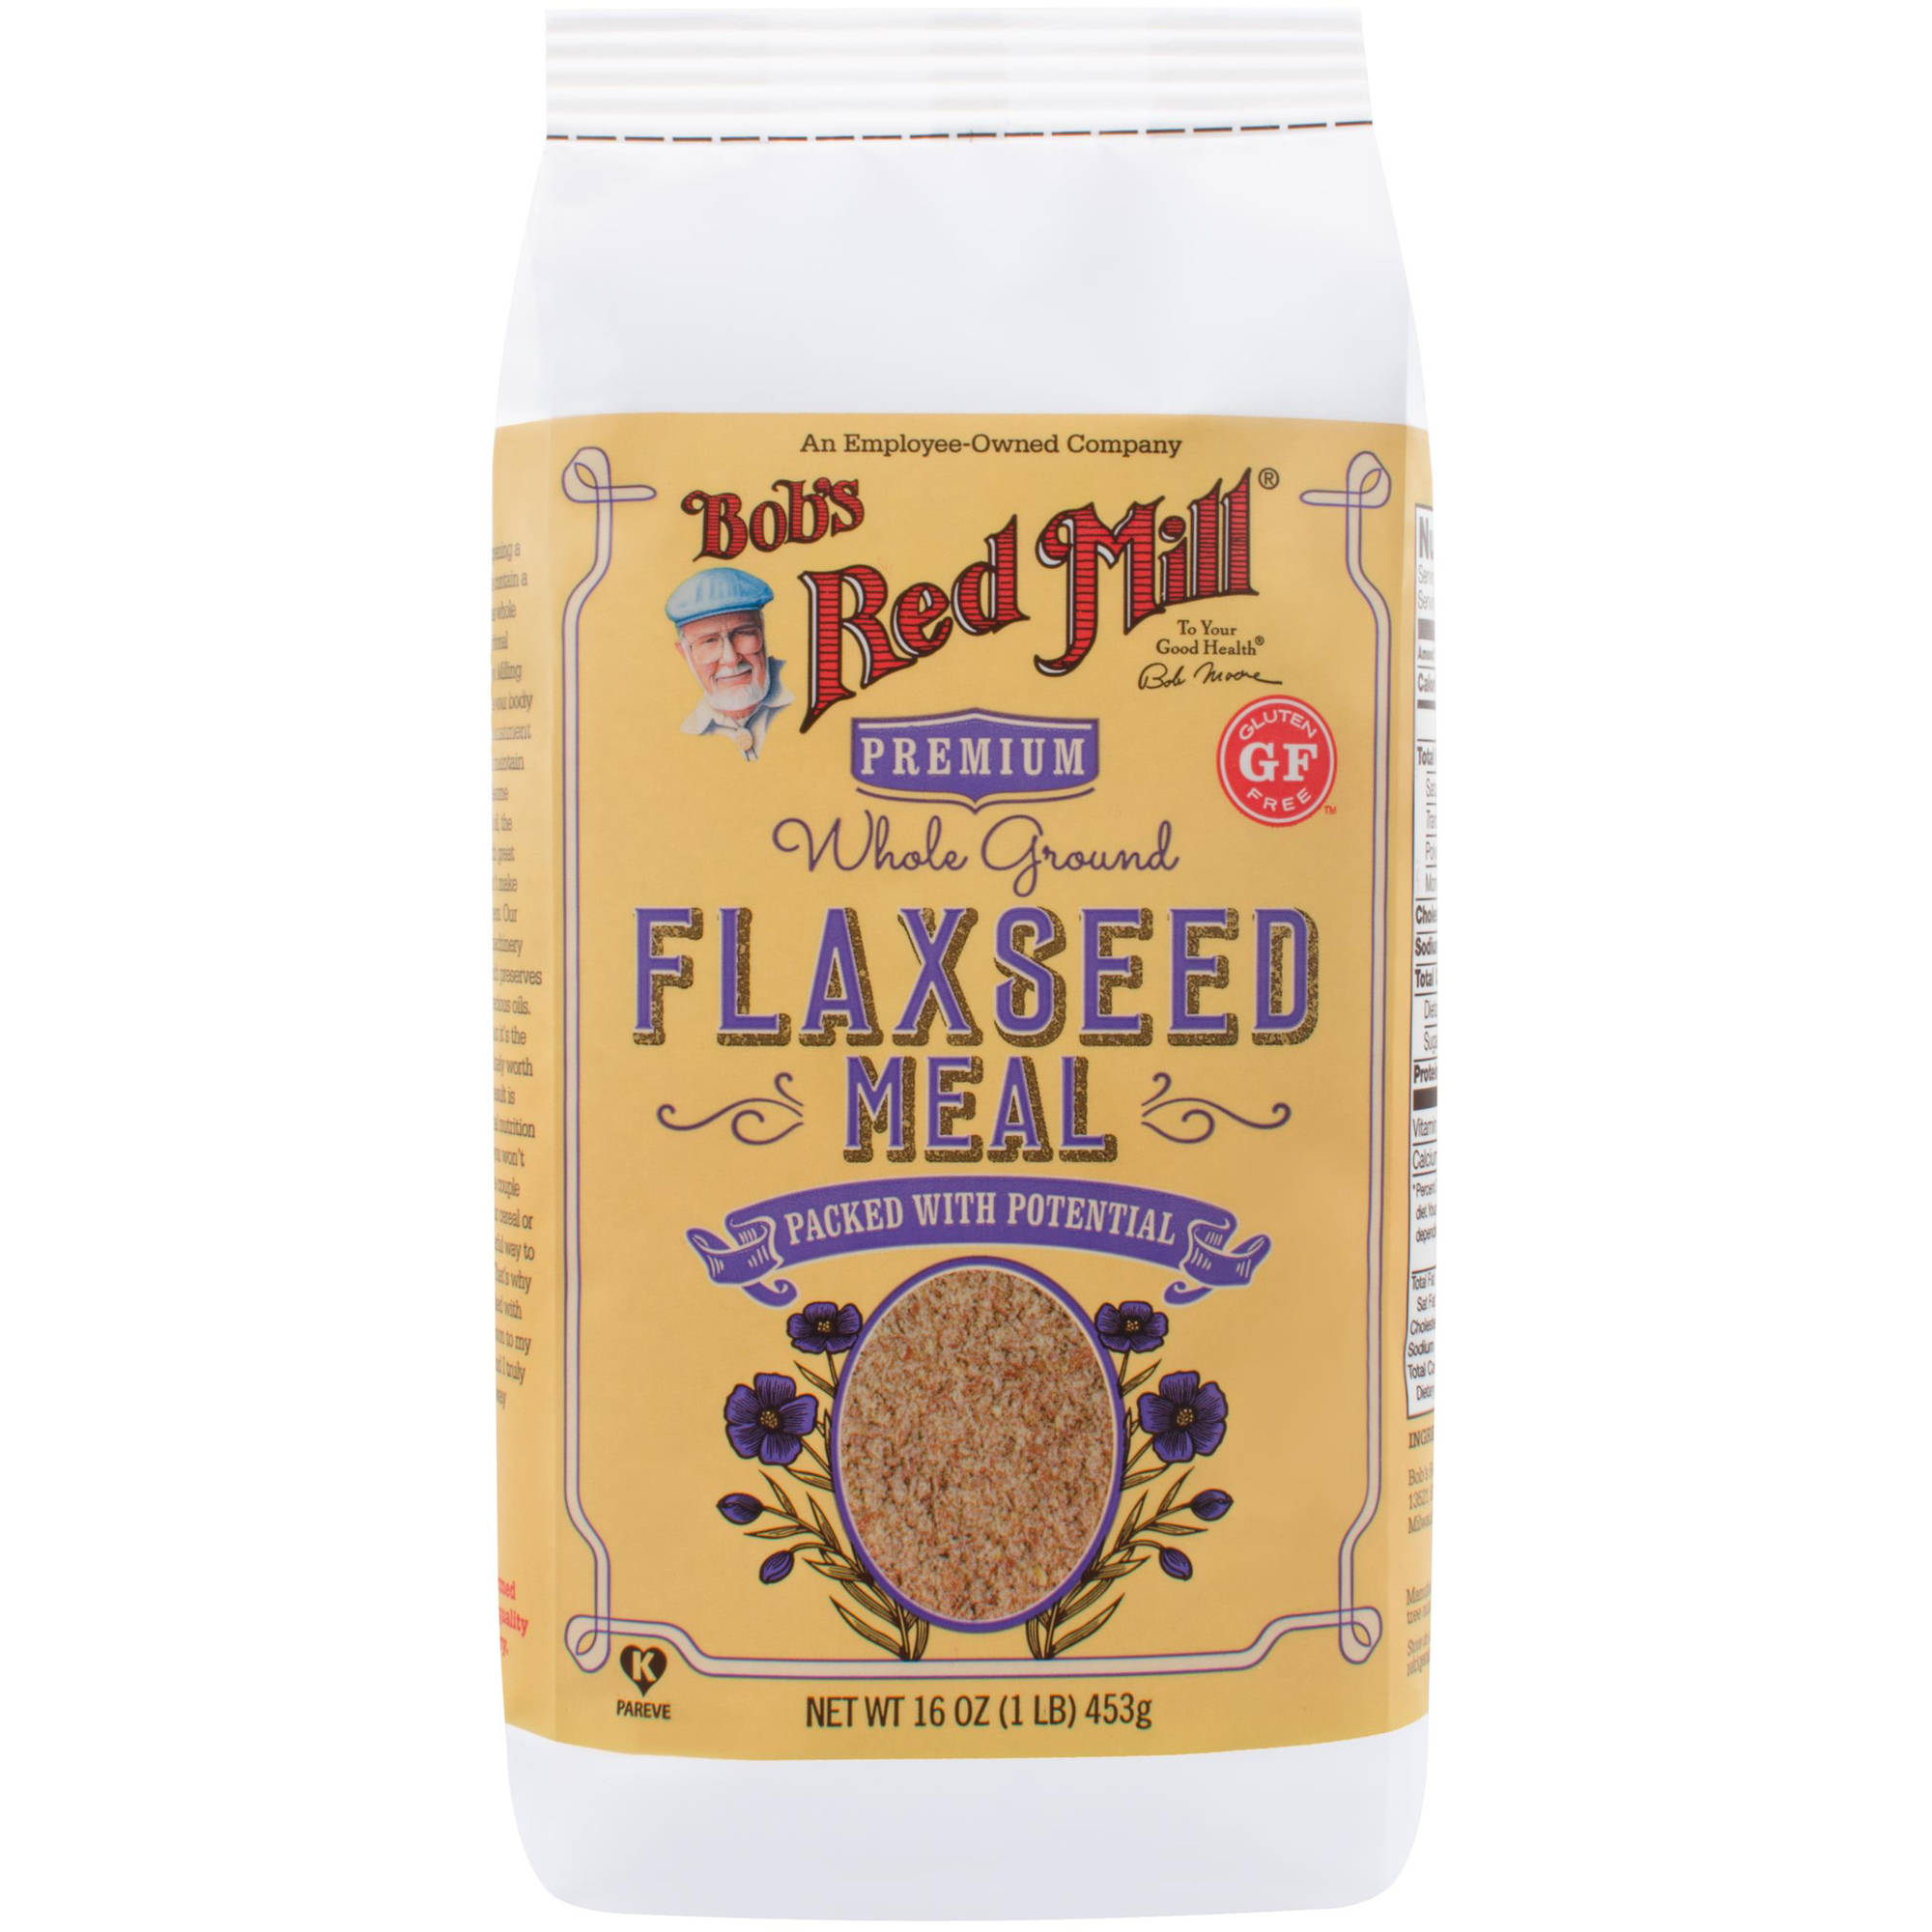 Bob's Red Mill Whole Ground Flaxseed Meal, 16 oz (Pack of 4)